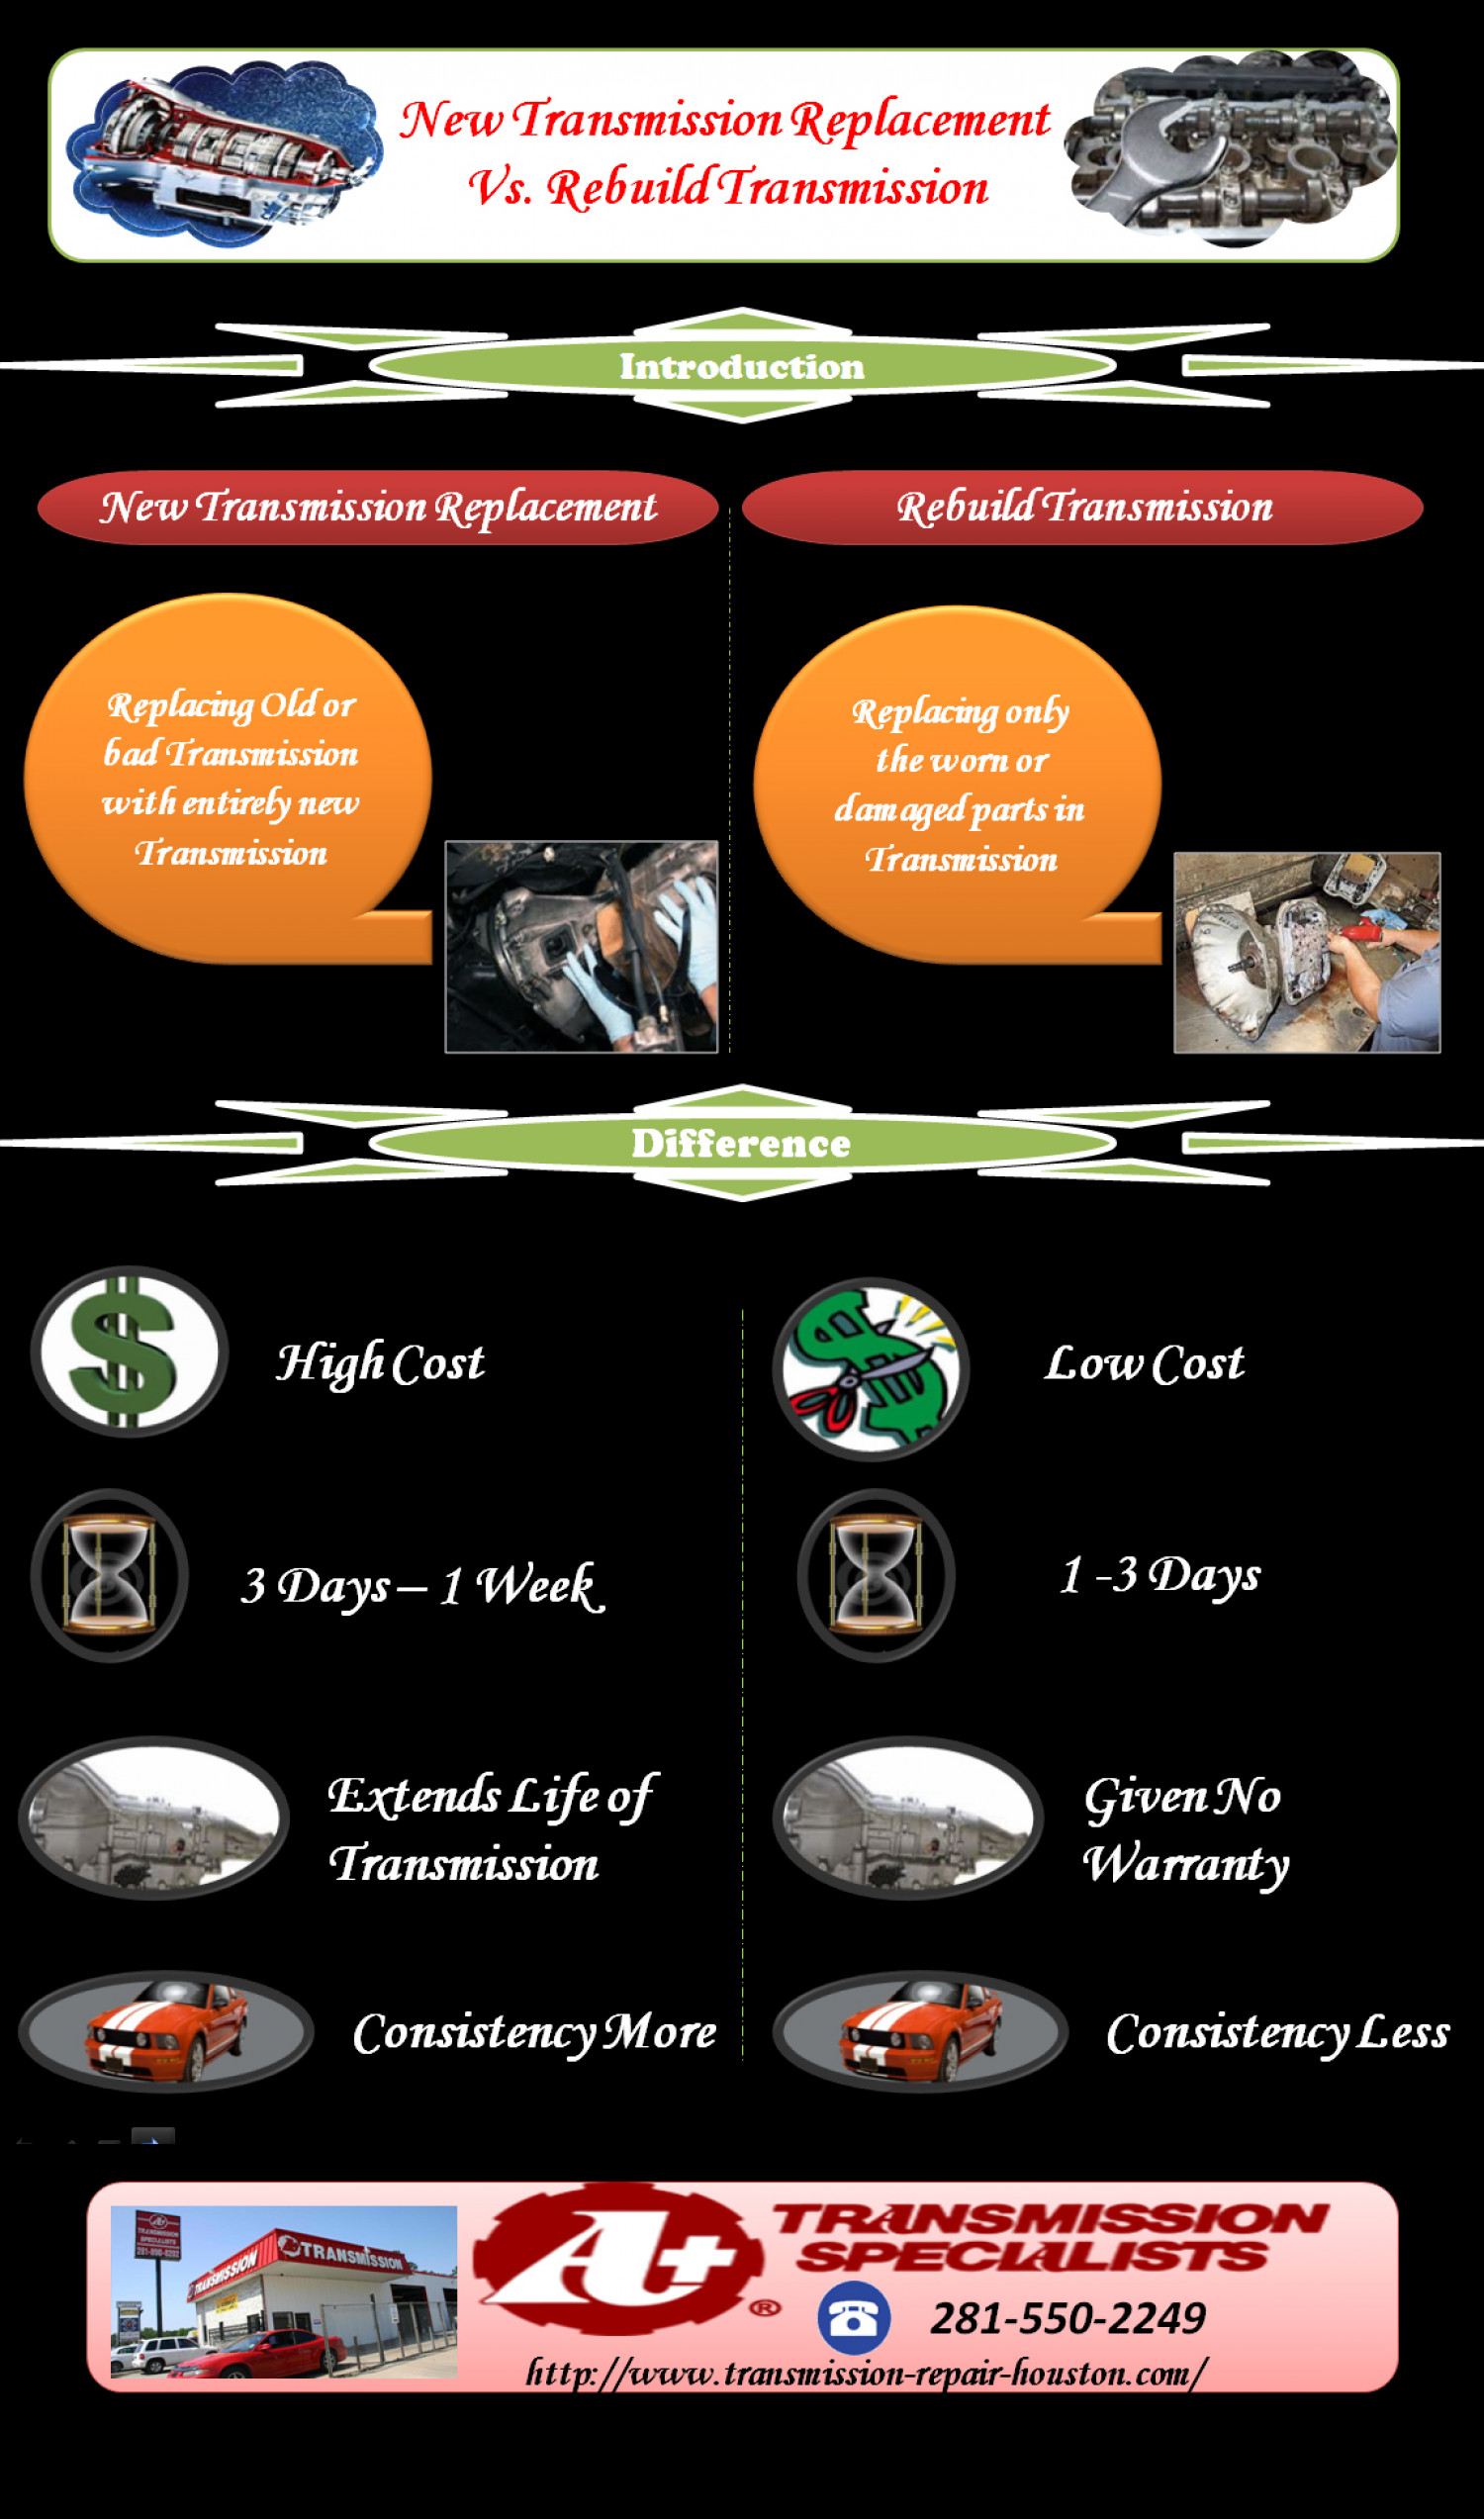 New Transmission Replacement Vs. Rebuild Transmission Infographic